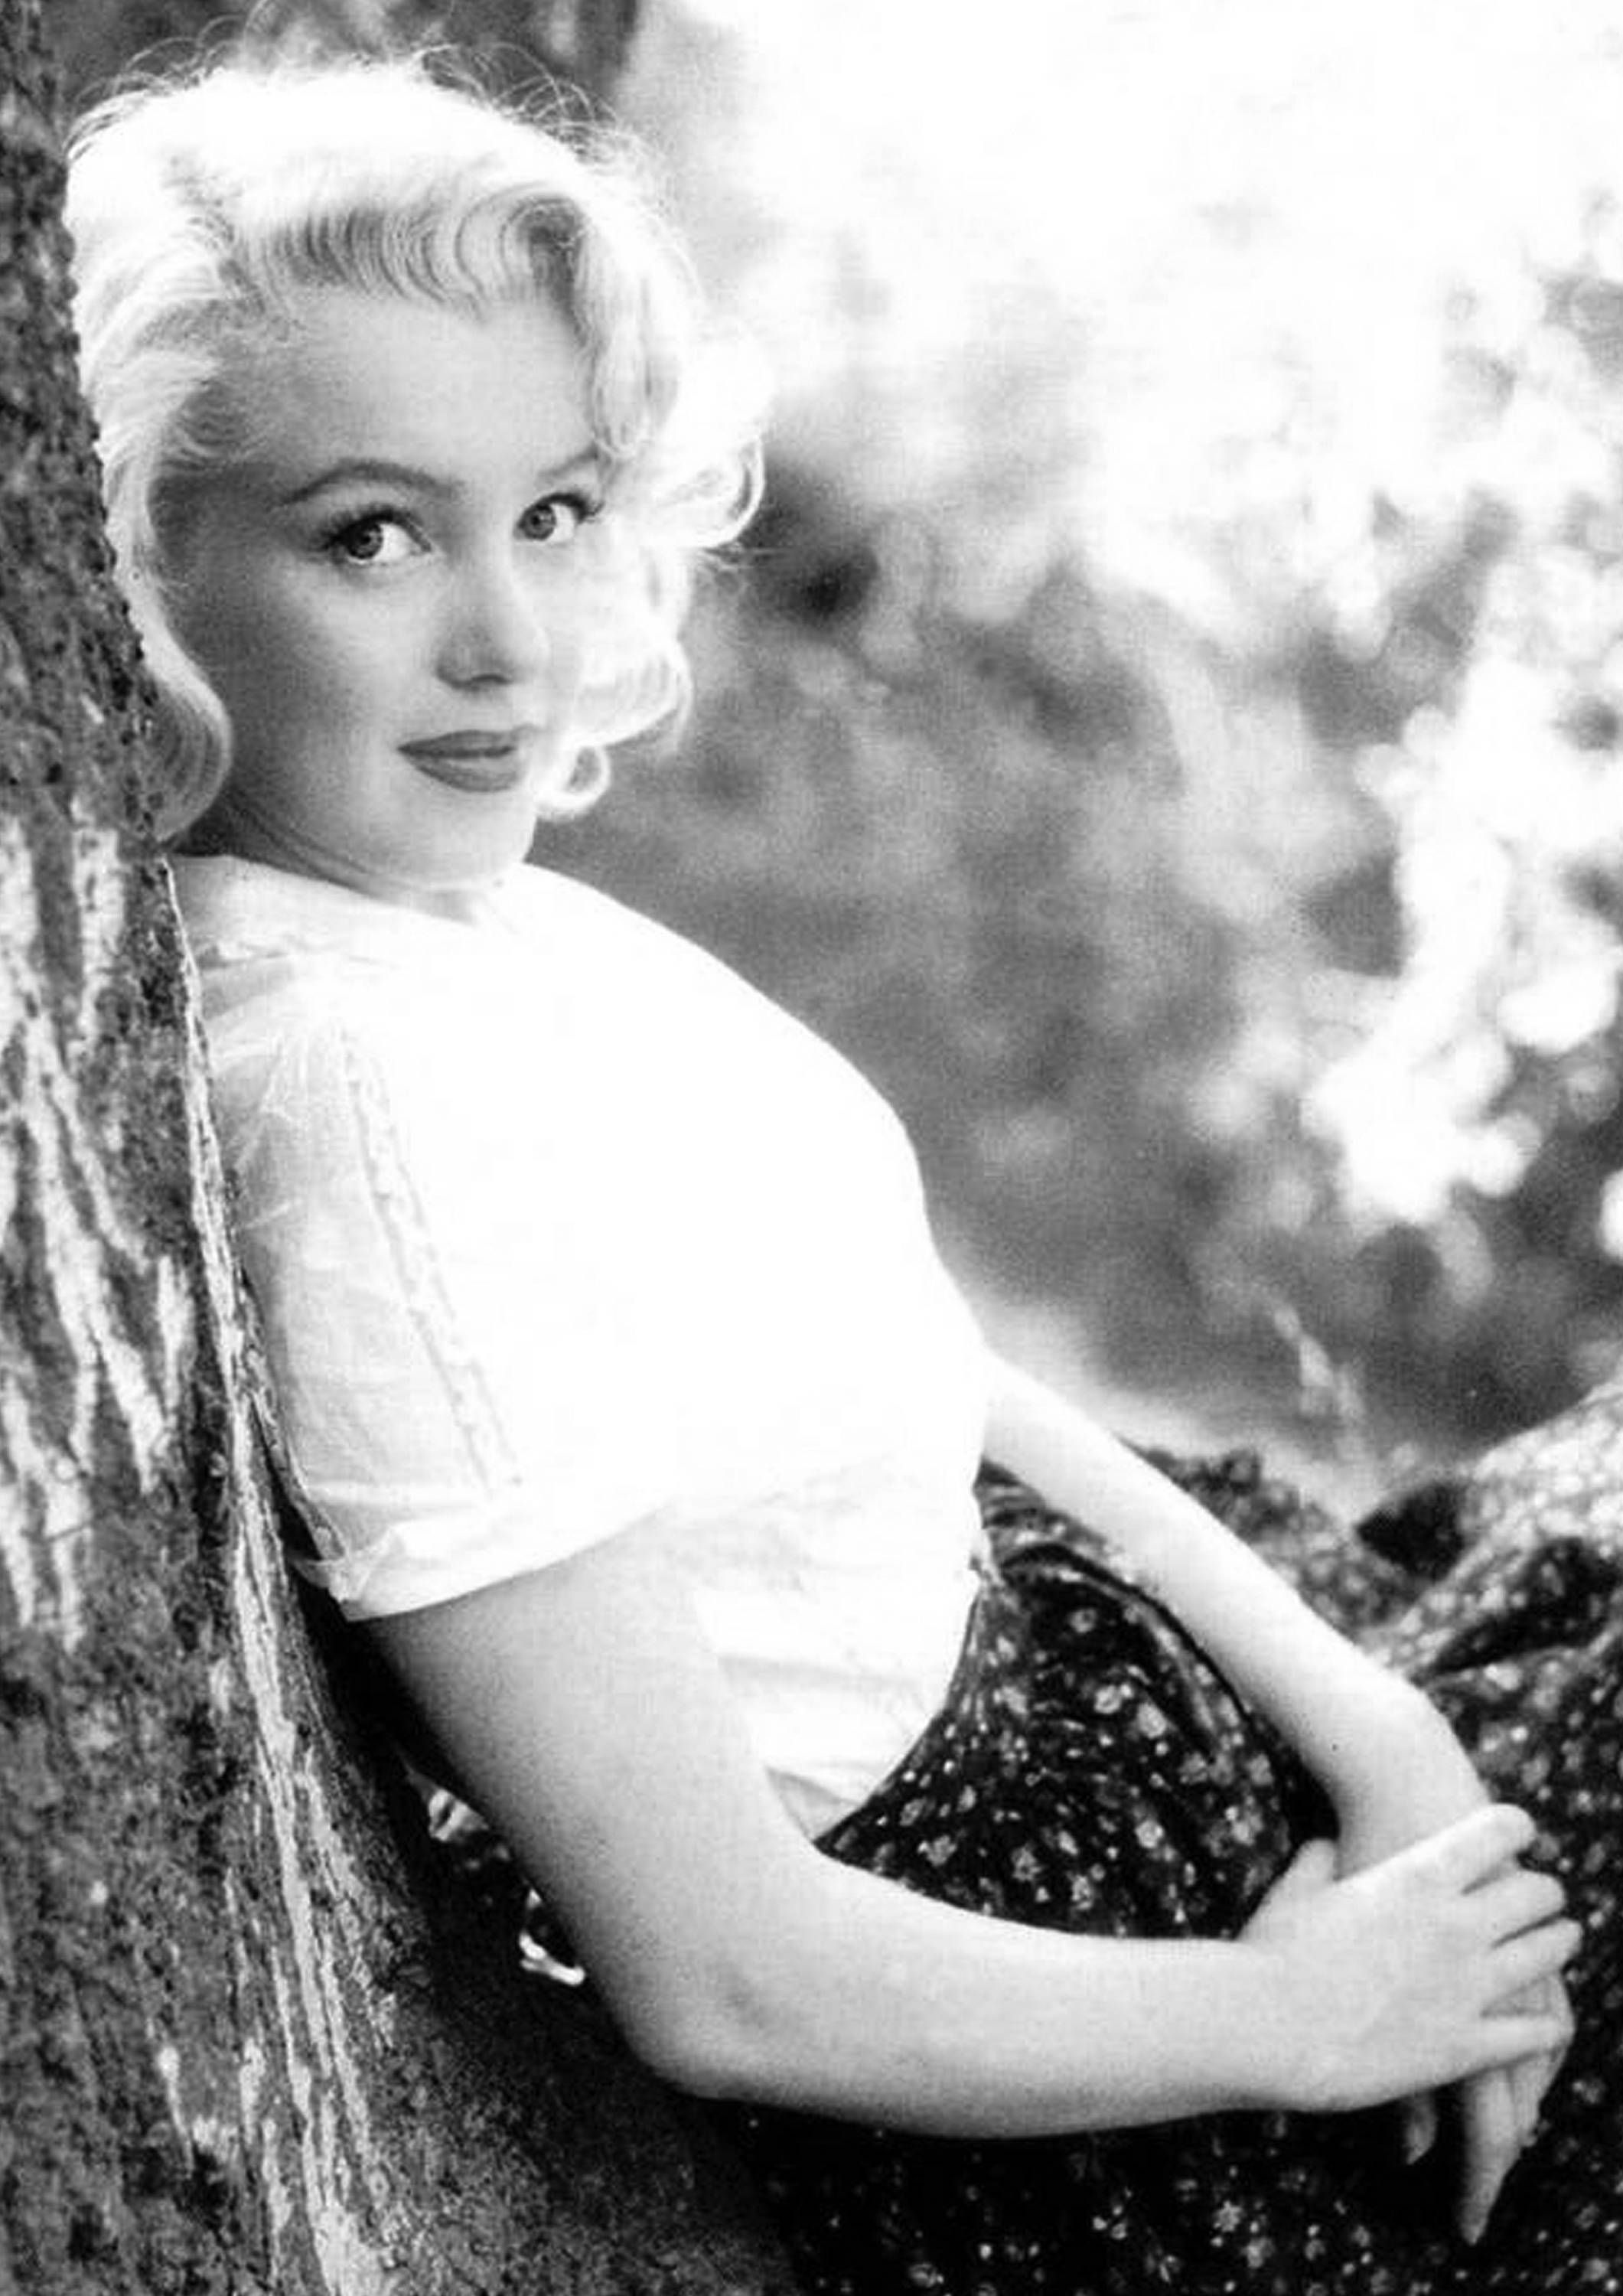 Marilyn Monroe Monochrome Photographic Print 13 (A4 Size - 210mm x ...